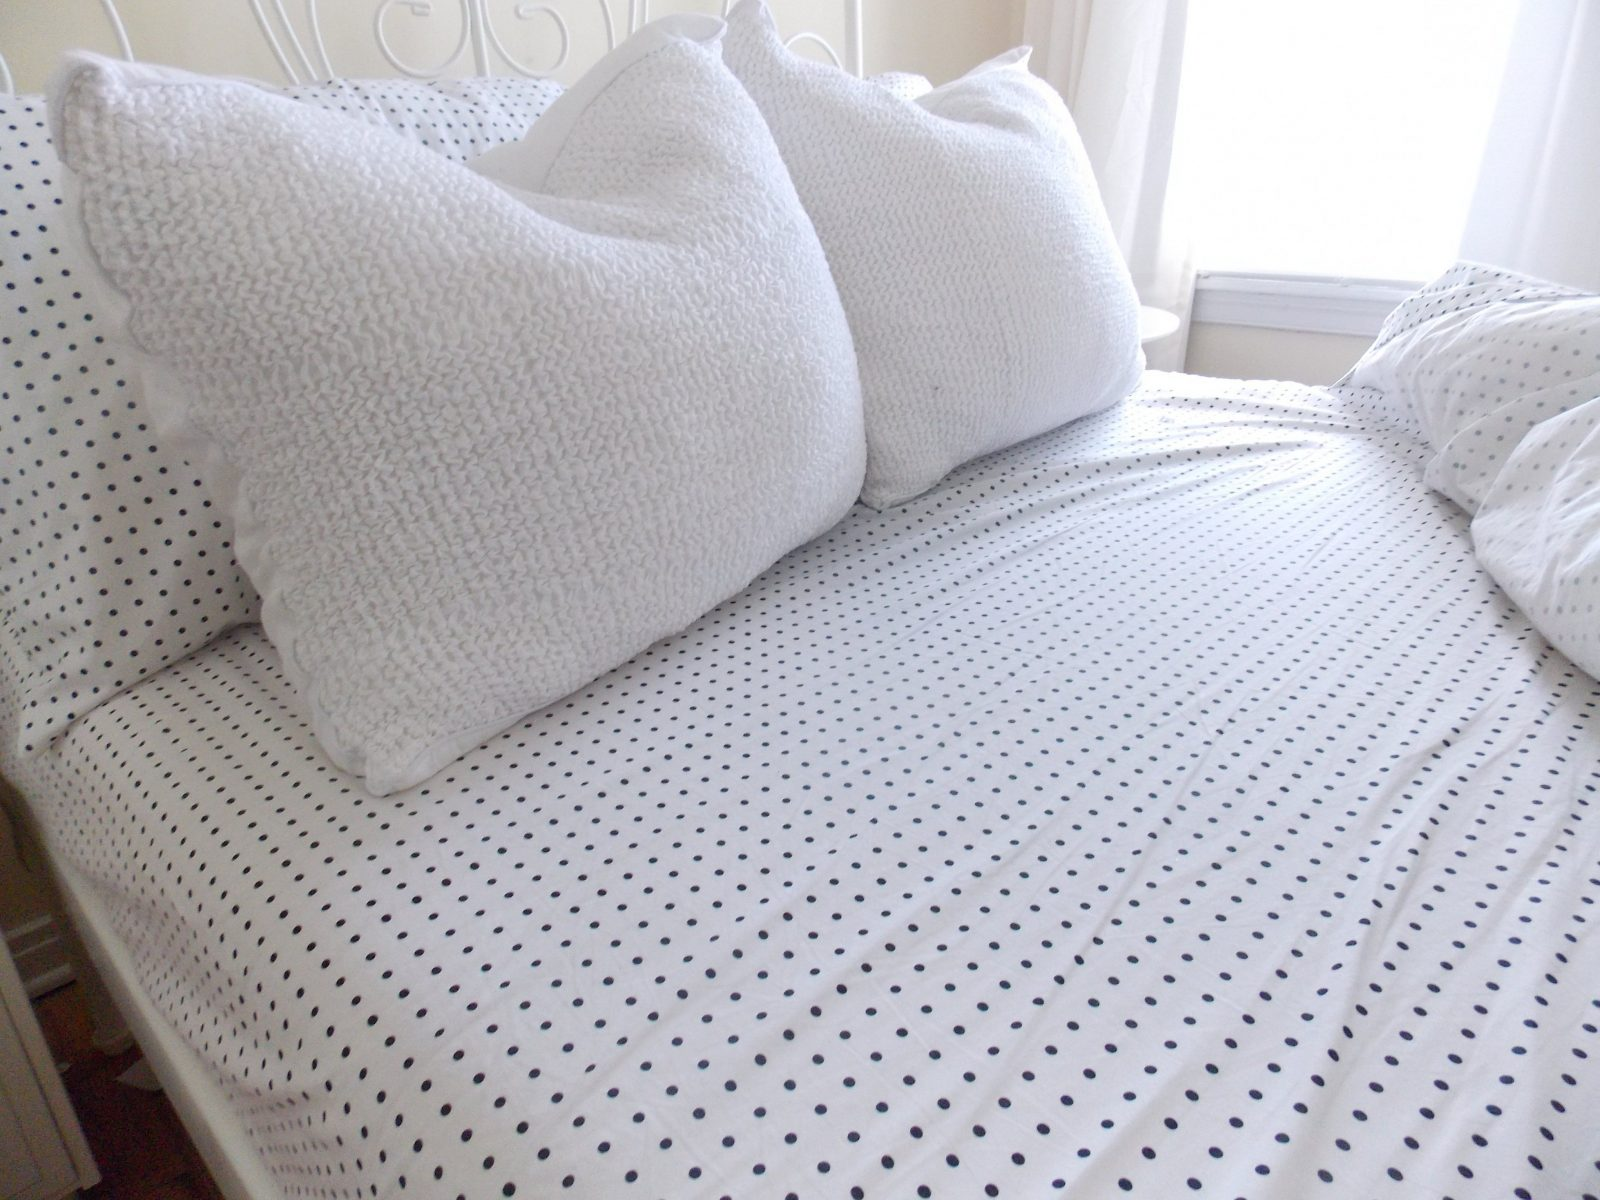 Bed & Bedding Soft White Pillows And White Gray Polka Dot Sheets On von Polka Dotted Bed Sheets Bild